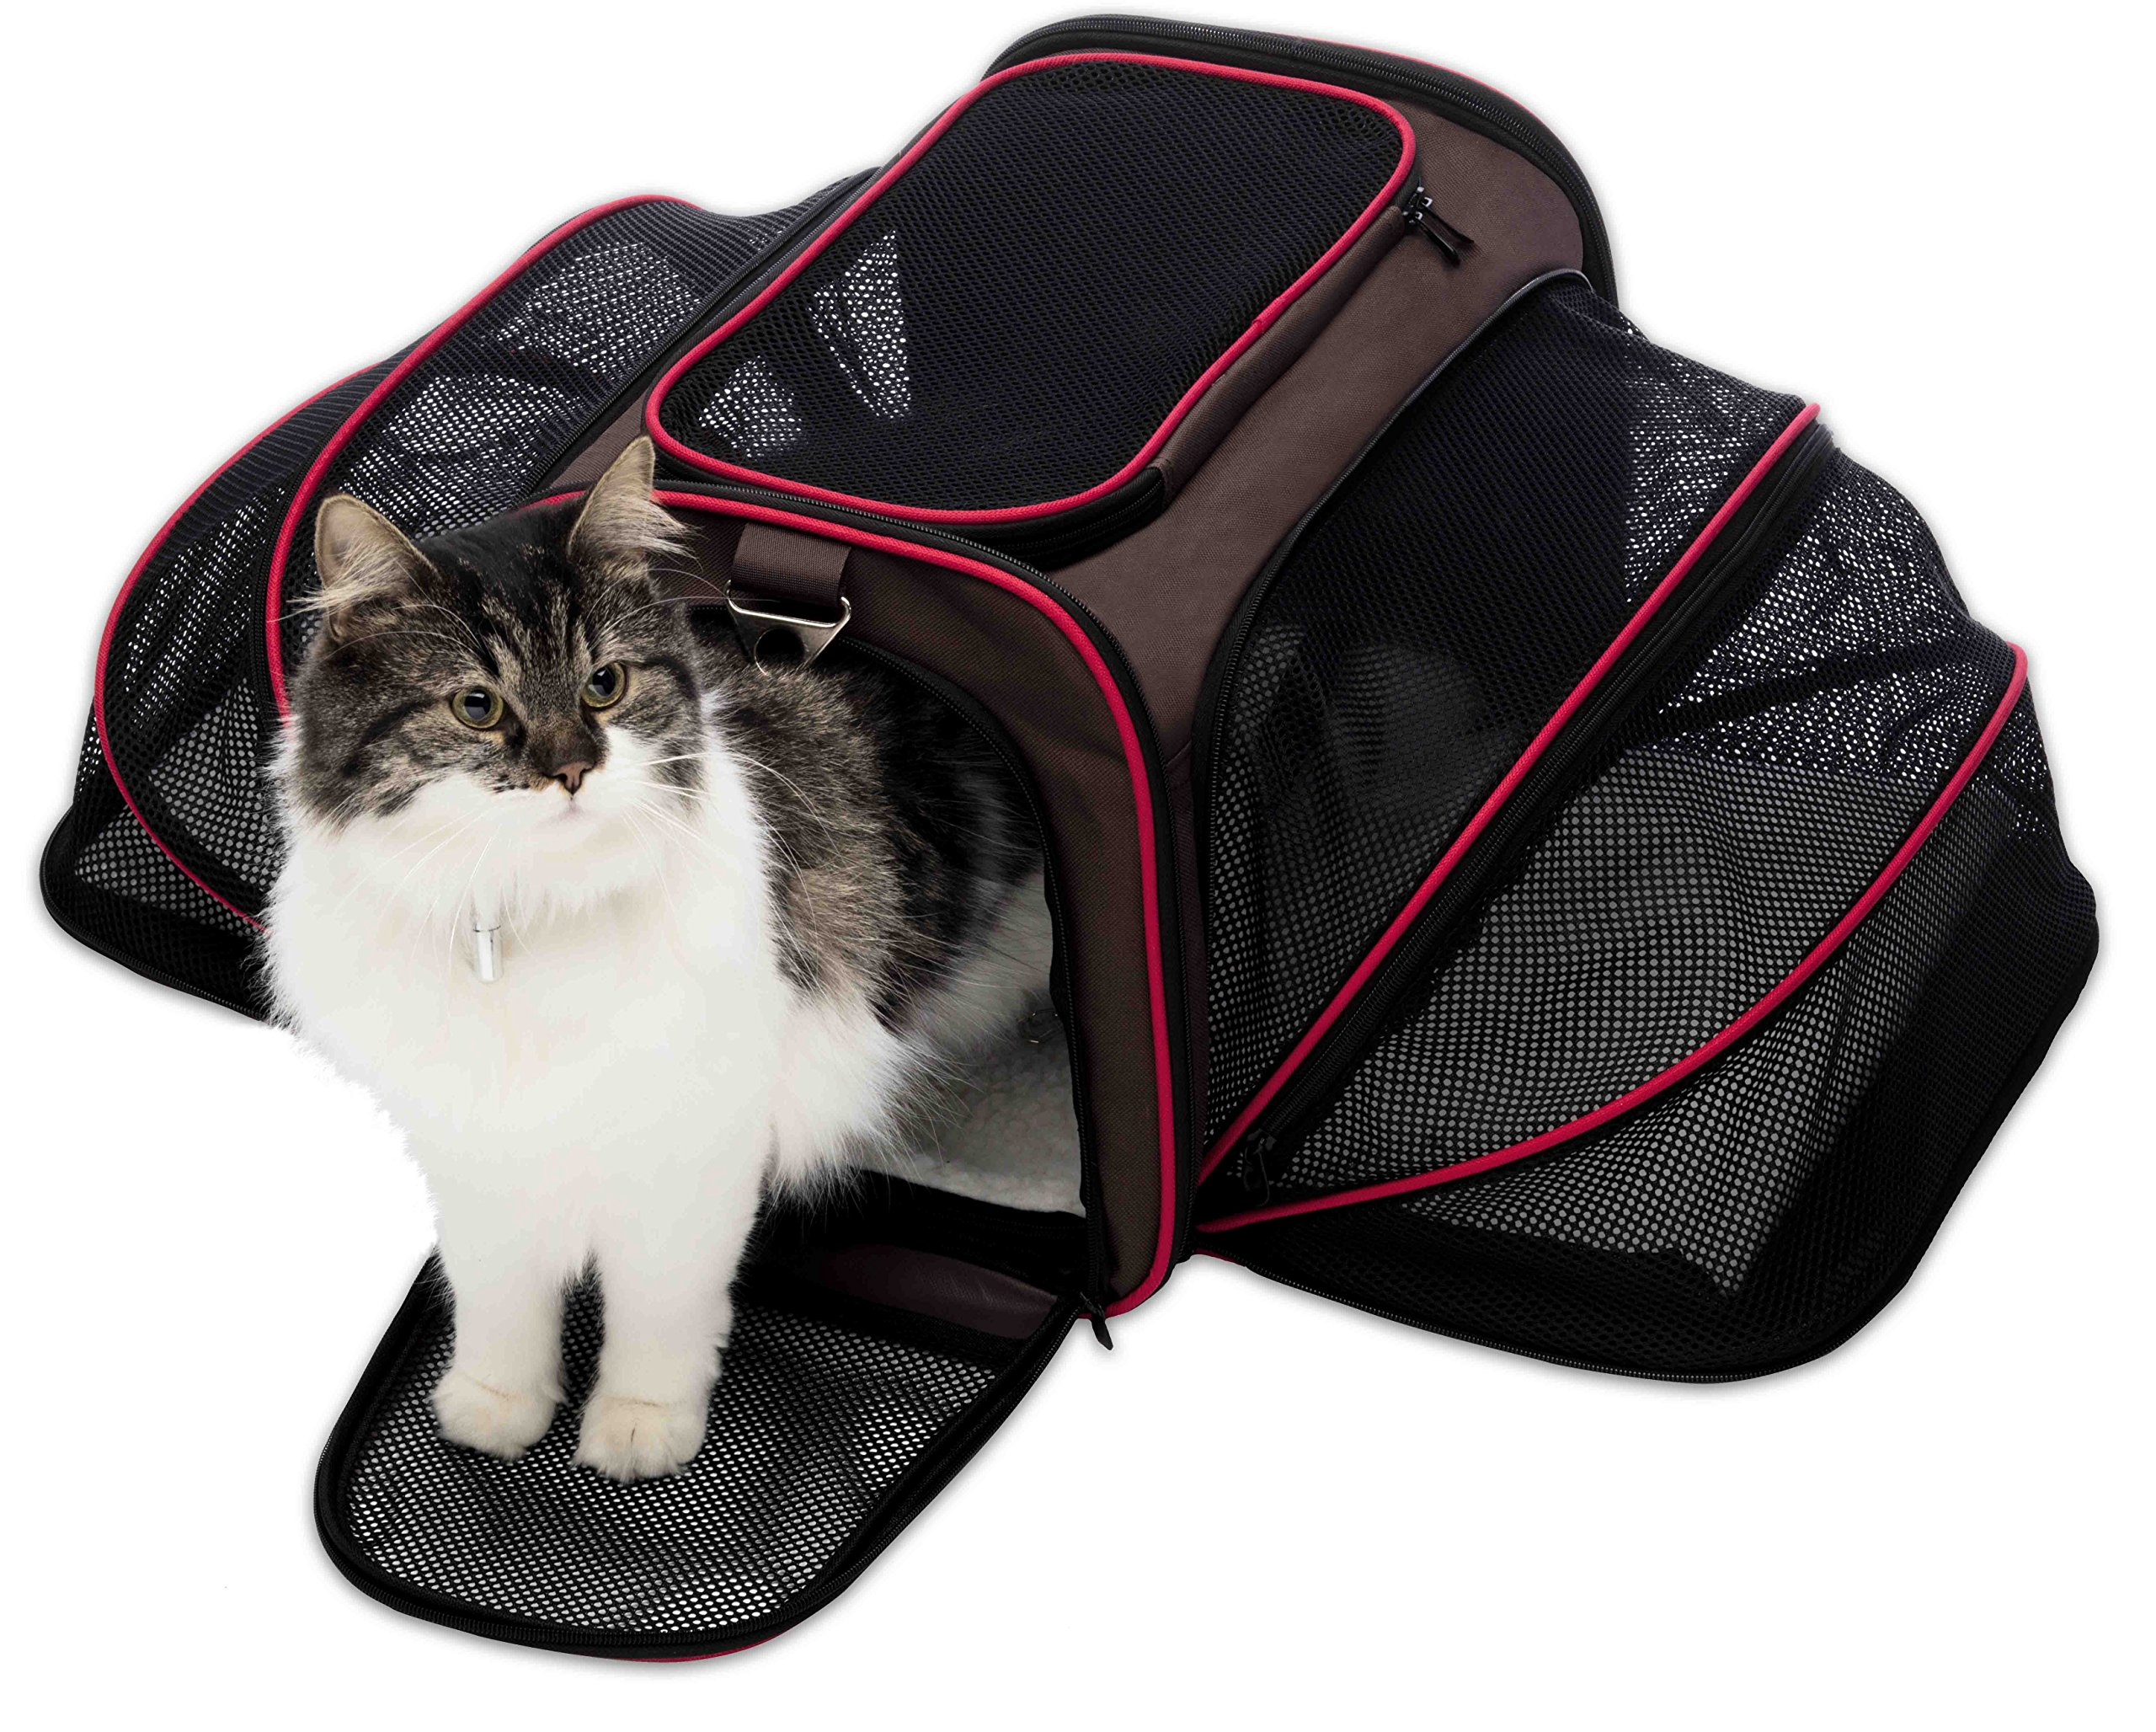 Petyella Cat Carrier Pet Carrier for Small Dogs and Cats Expandable Soft Sided Crate for Pet - Airline Approved Medium Kennel Travel Bag - 2.8 lbs Dog Carriers with Bonus Blanket and Bowl,Dark Brown by Petyella (Image #10)